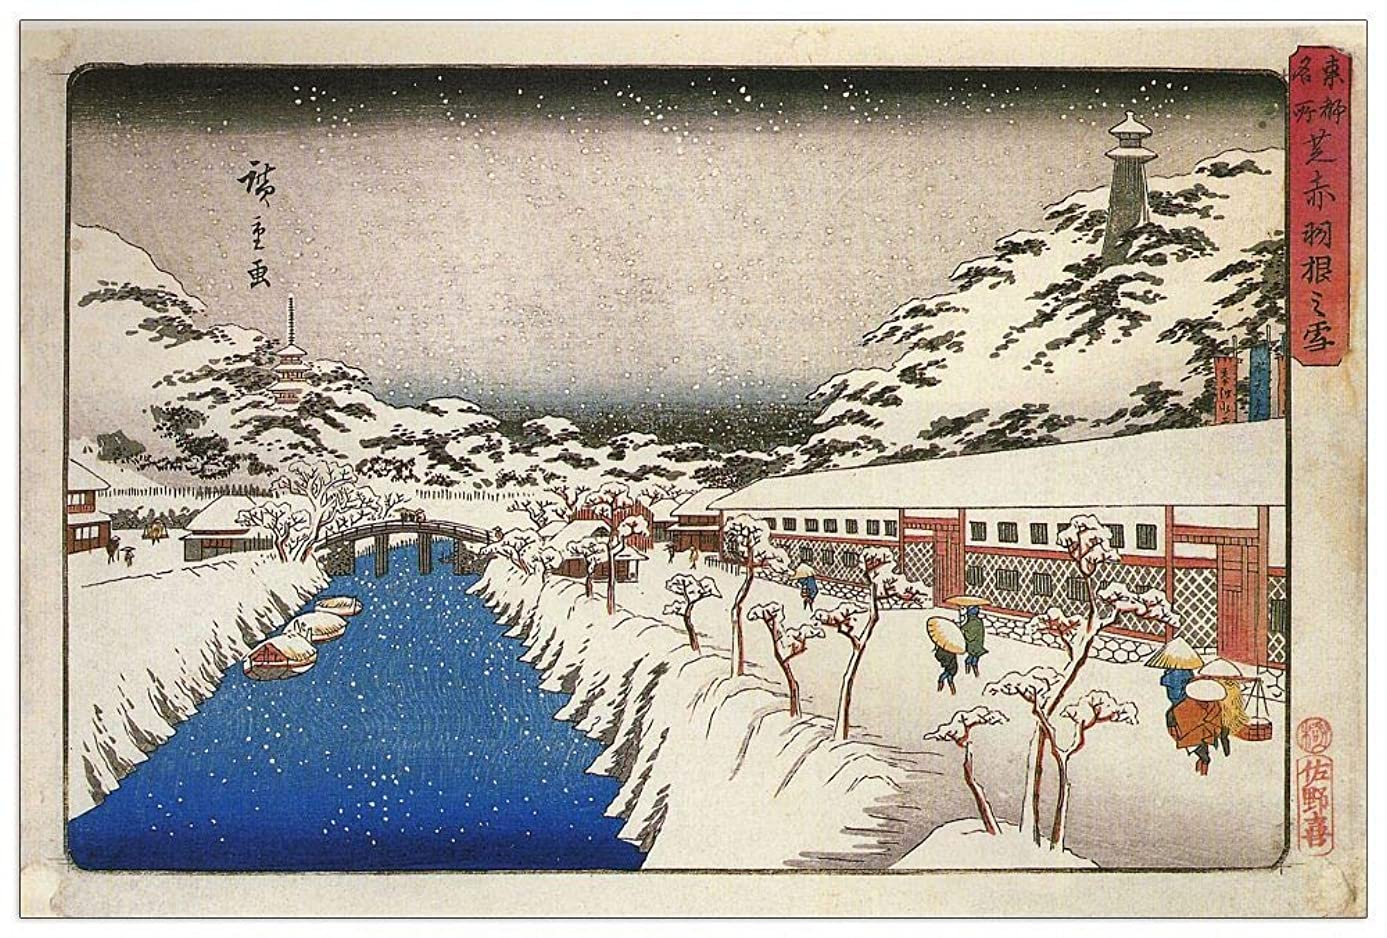 ArtPlaza TW93033 Hiroshige Utagawa - View of a Canal in The Snow Decorative Panel 39.5x27.5 Inch Multicolored